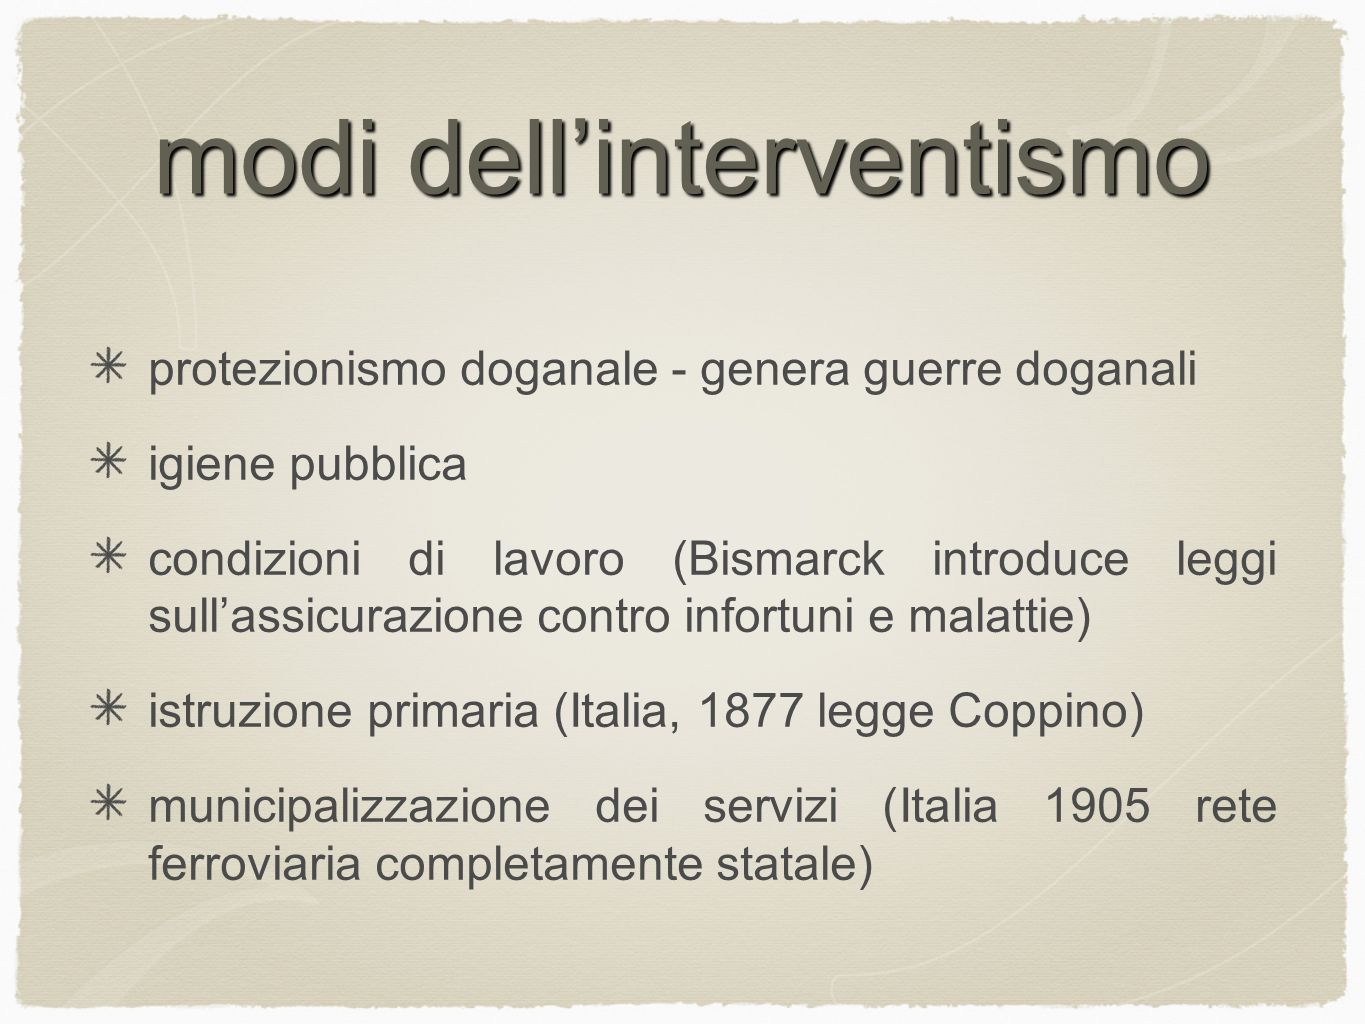 modi dell'interventismo